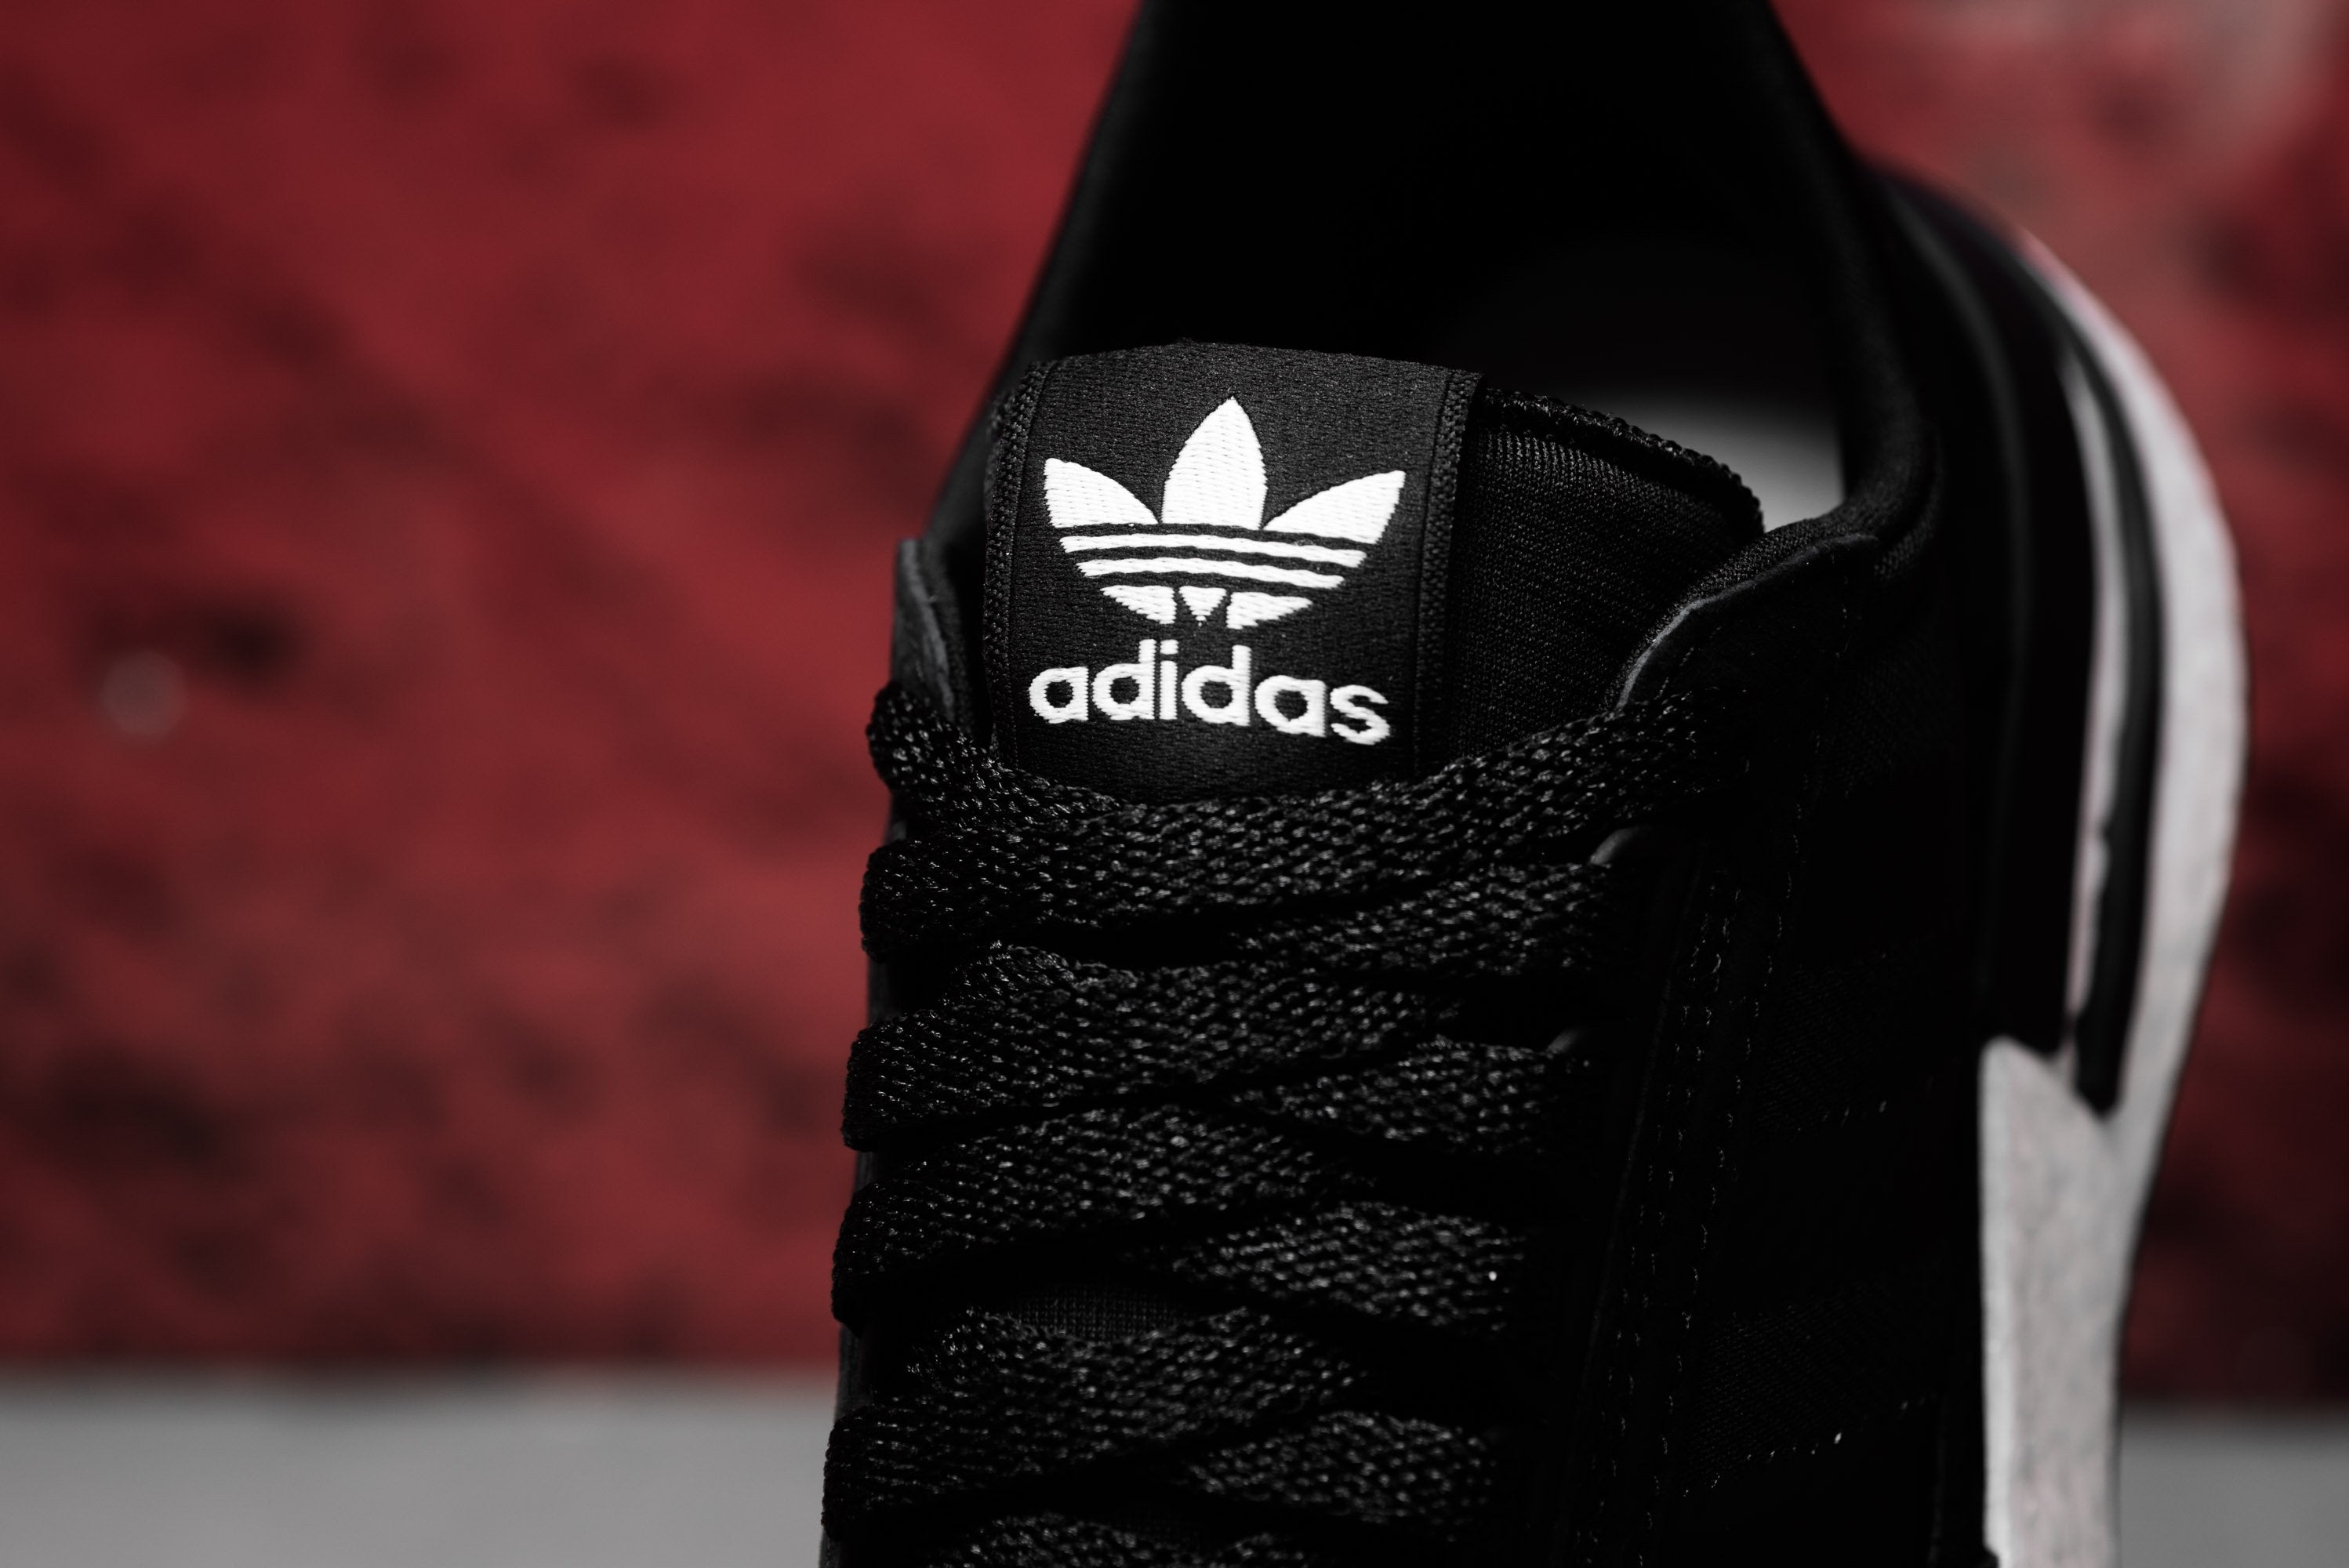 adidas ZX 500 RM - Core Black/Footwear White #B42227-Preorder Item-Navy Selected Shop